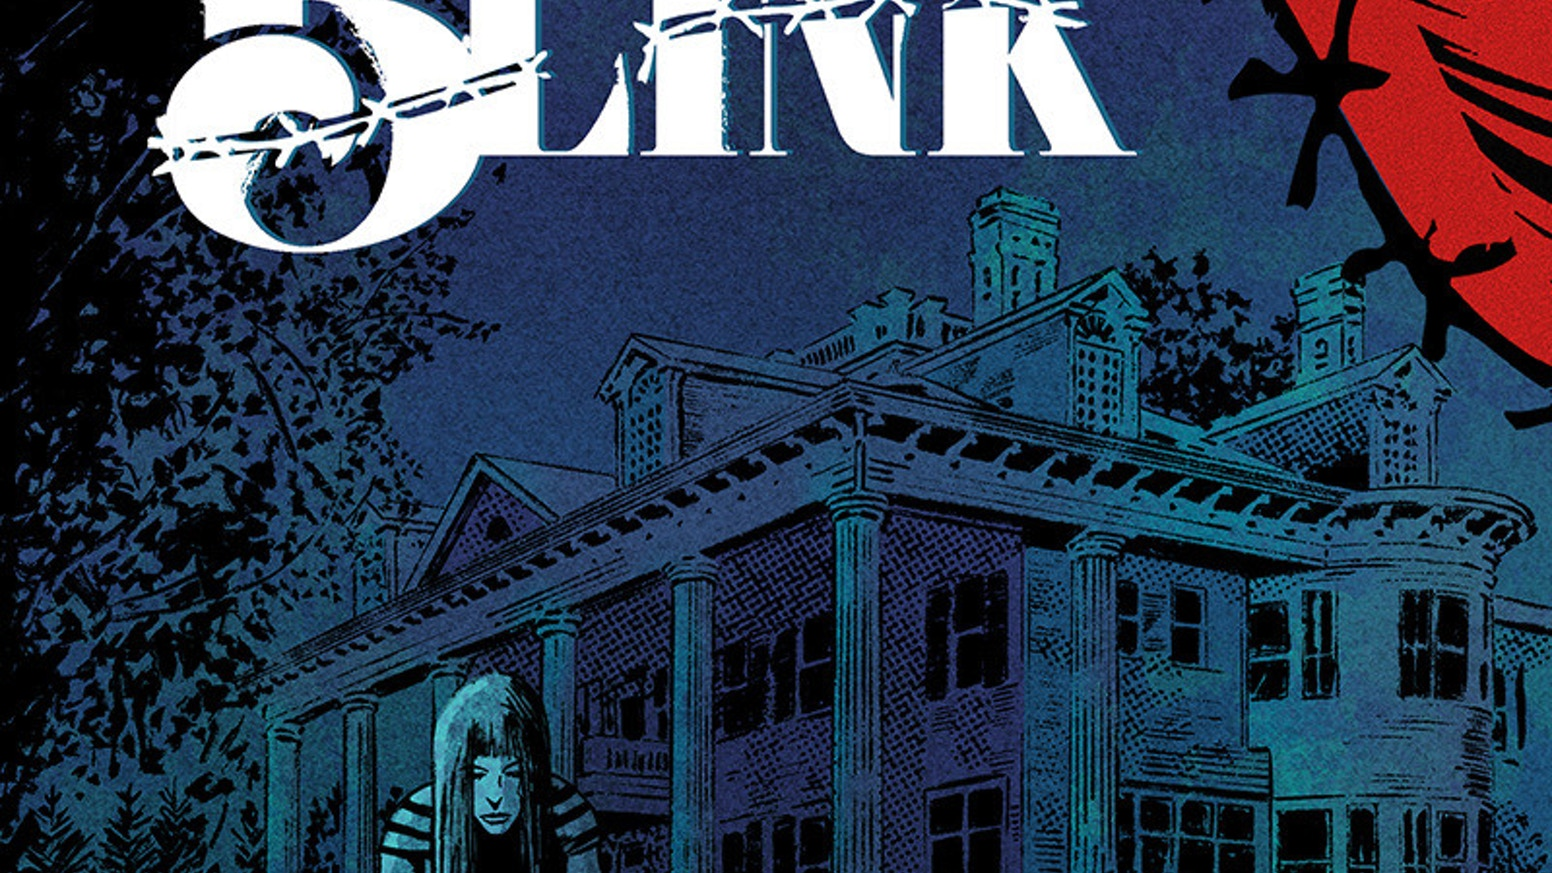 The first issue of a limited horror comic book series about a killer that sews the eyelids of victims shut, stalking a small town.